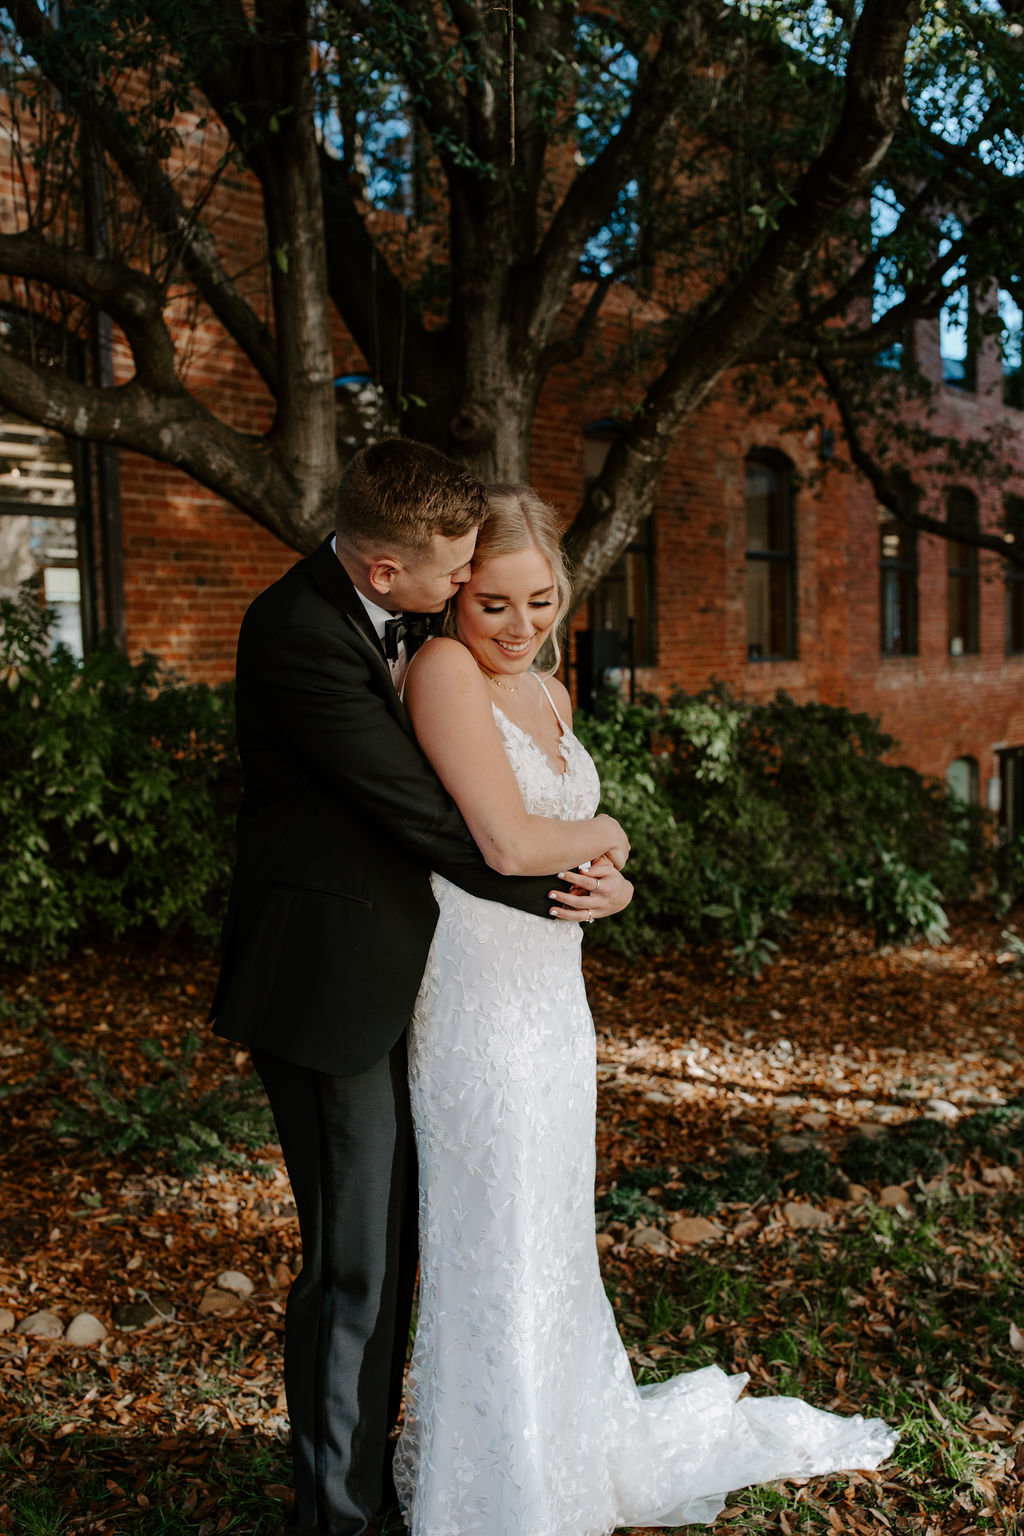 clink-events-greenville-wedding-planner-5